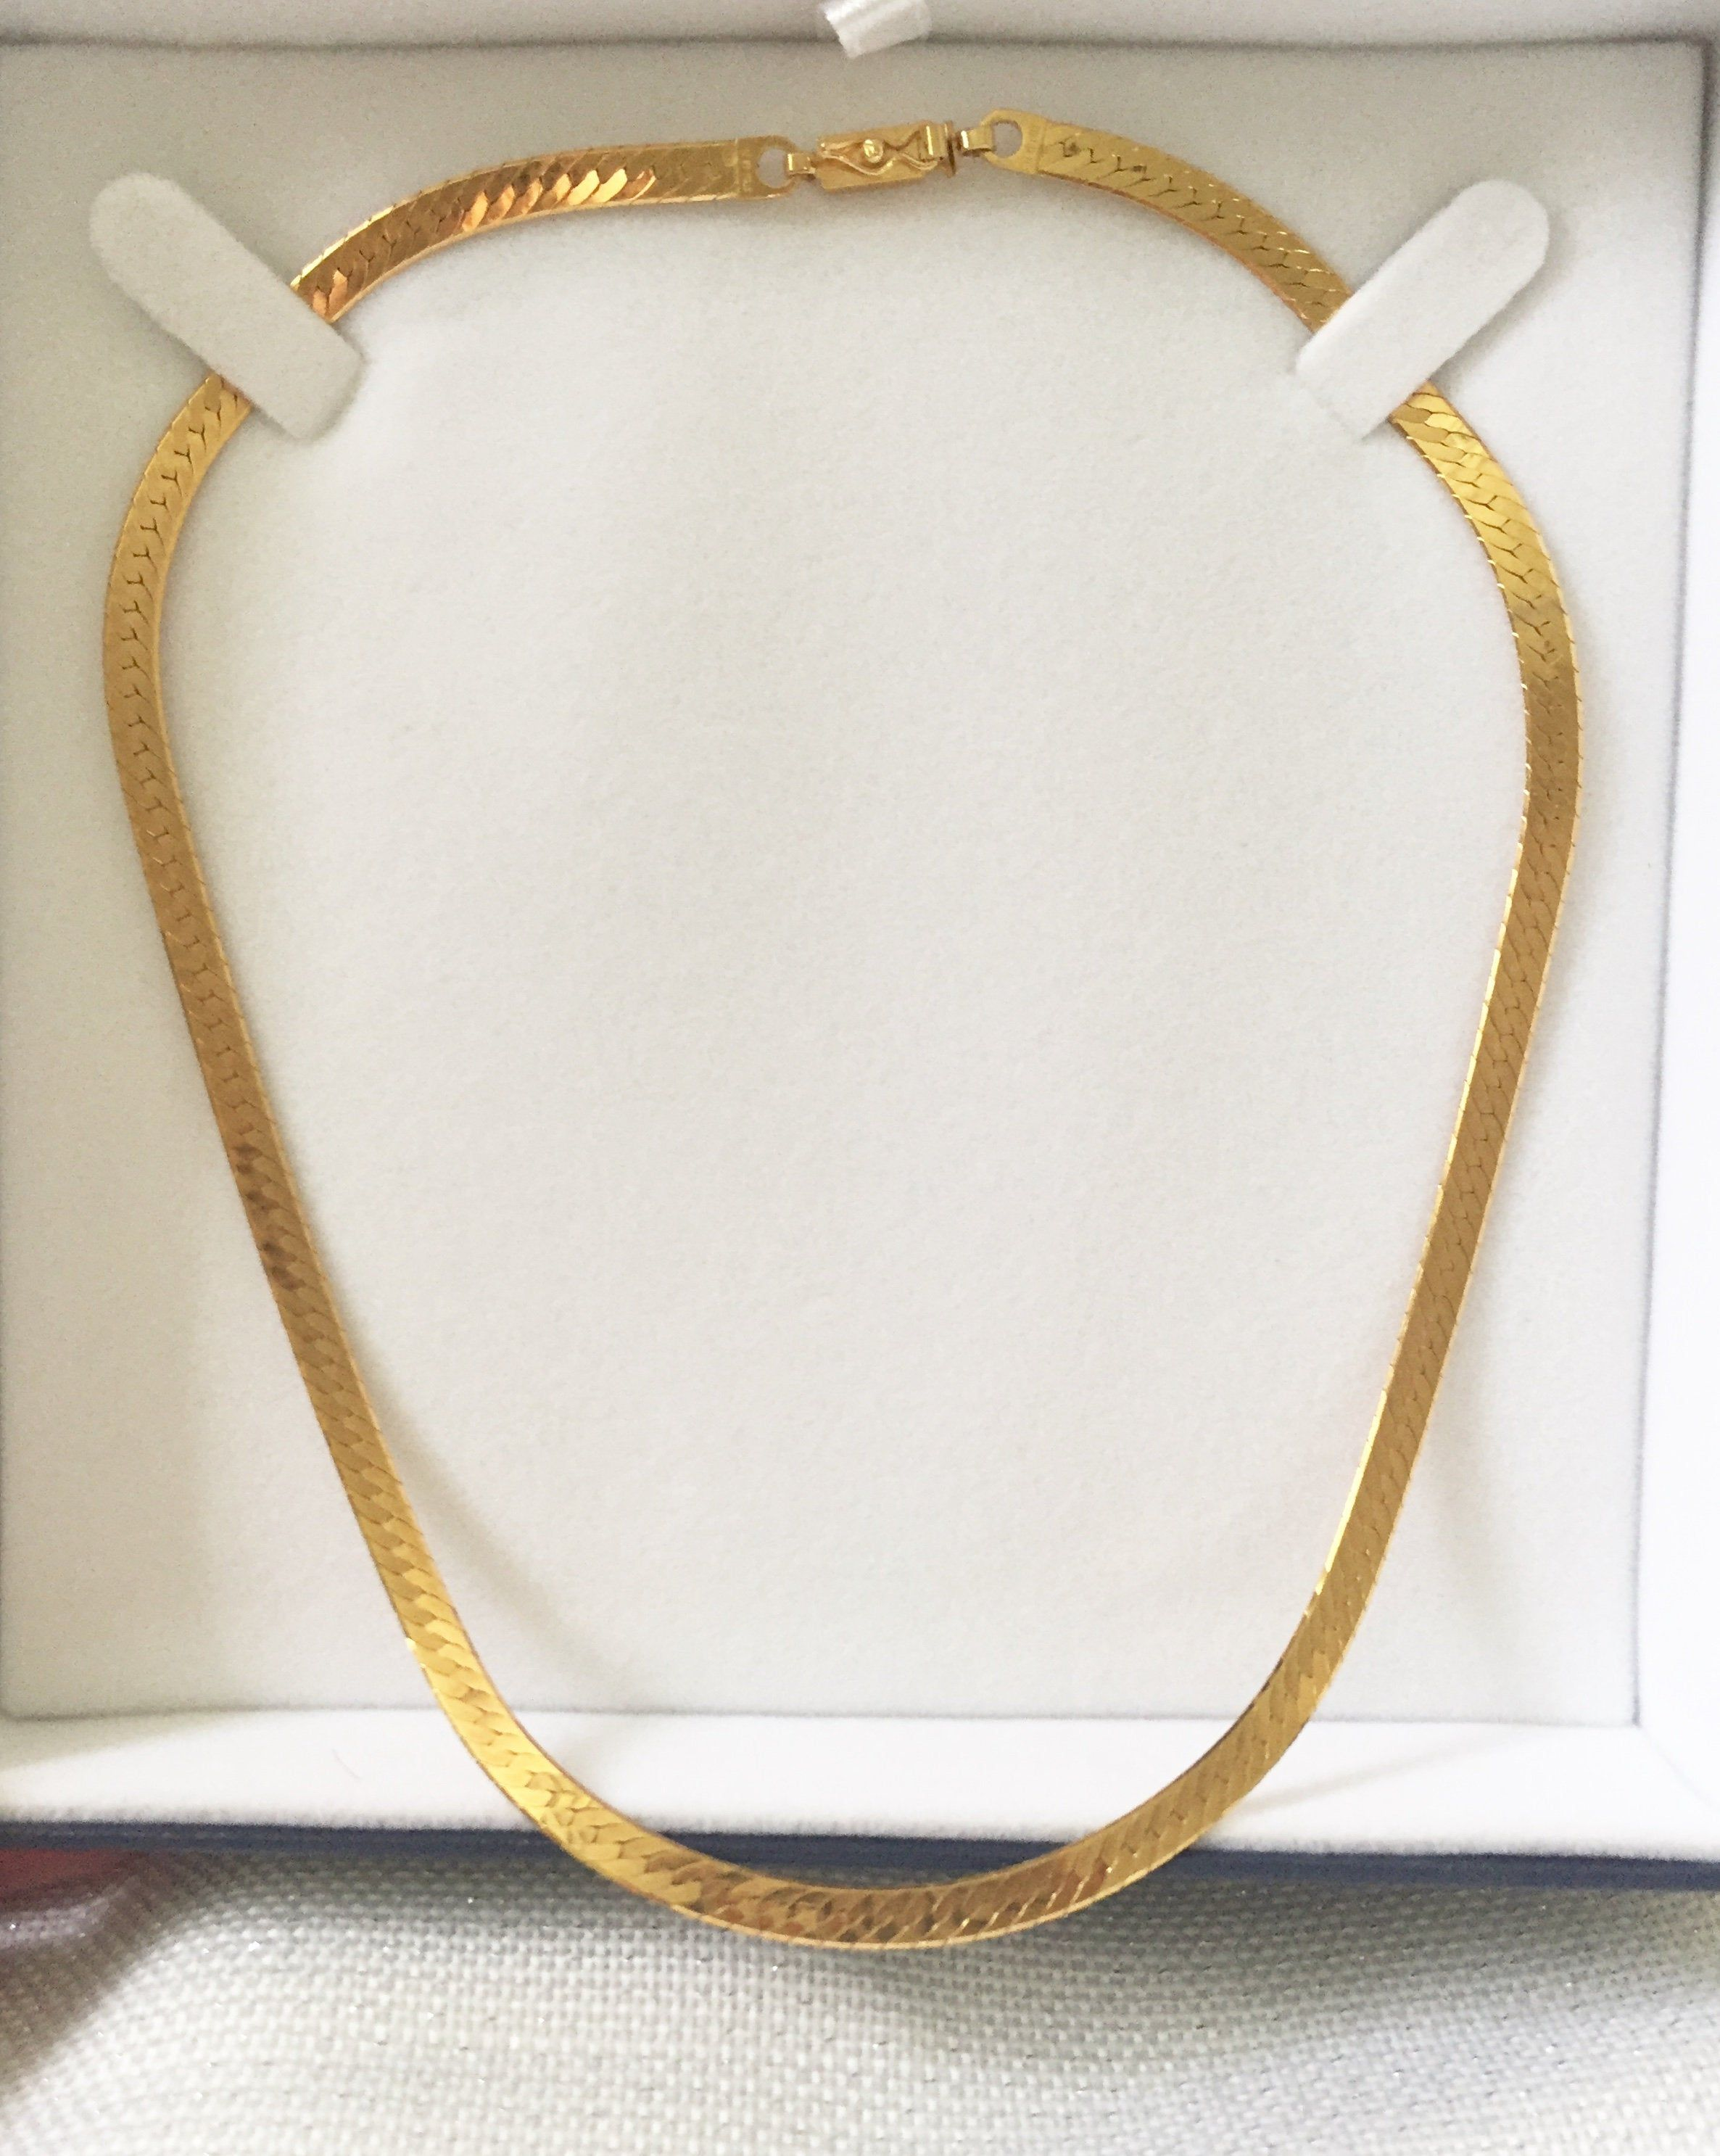 Herringbone Chain 14k Yellow Gold 4mm 16 Length 1980 S Vintage Made In Italy Layering Chain Necklace New Old Stock Gold Herringbone Chain Layered Chain Necklace 14k Yellow Gold